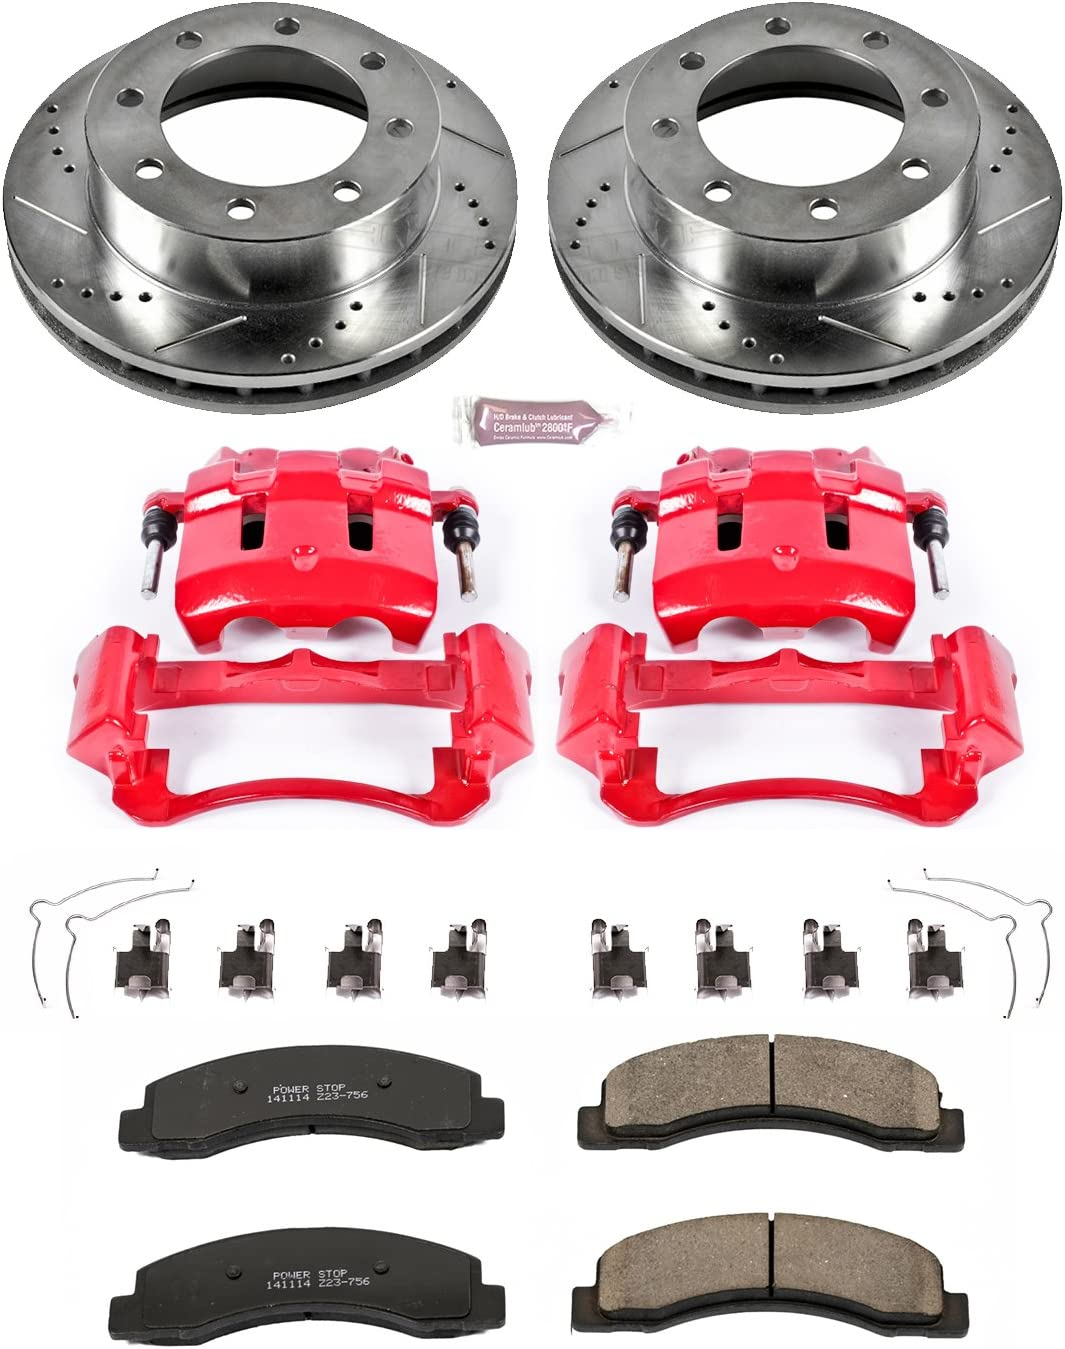 Power Stop KC1891-36 Front Z36 Truck and Tow Brake Kit with Calipers